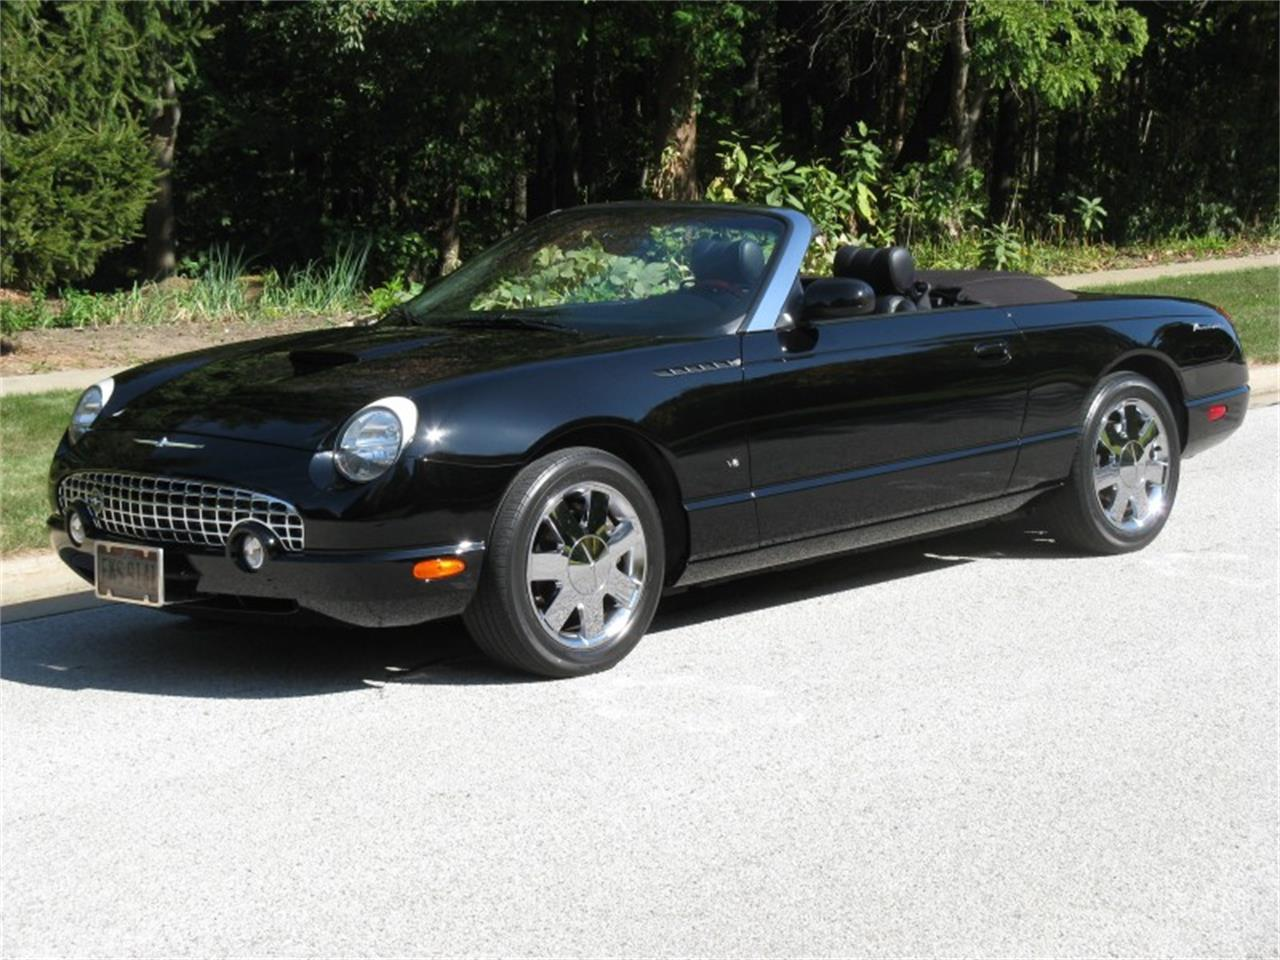 2003 Ford Thunderbird (CC-1359055) for sale in Shaker Heights, Ohio